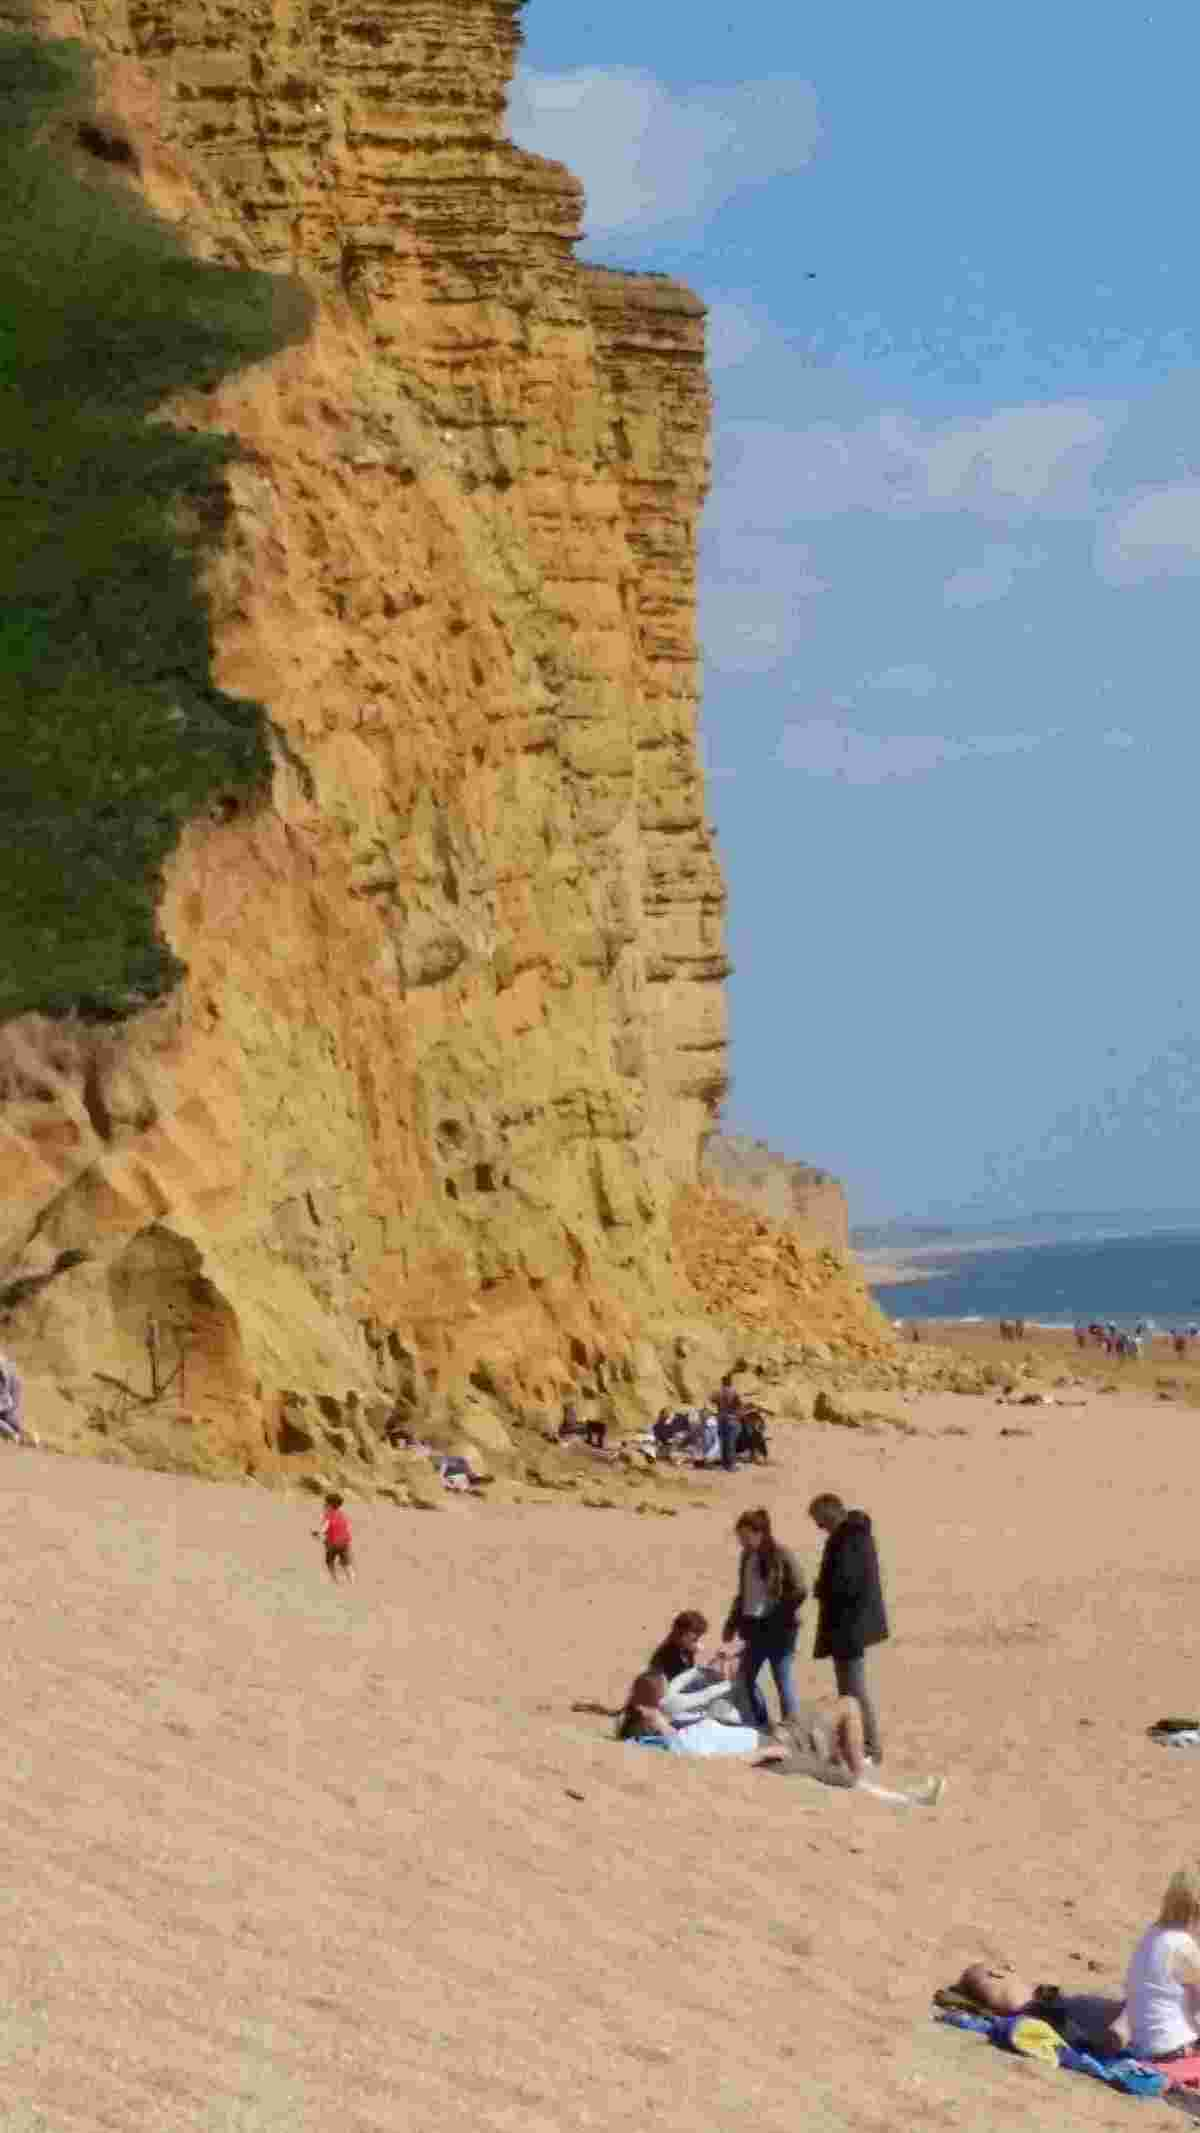 TAKE CARE: Safety fears for people sitting on the beach too close to the cliffs